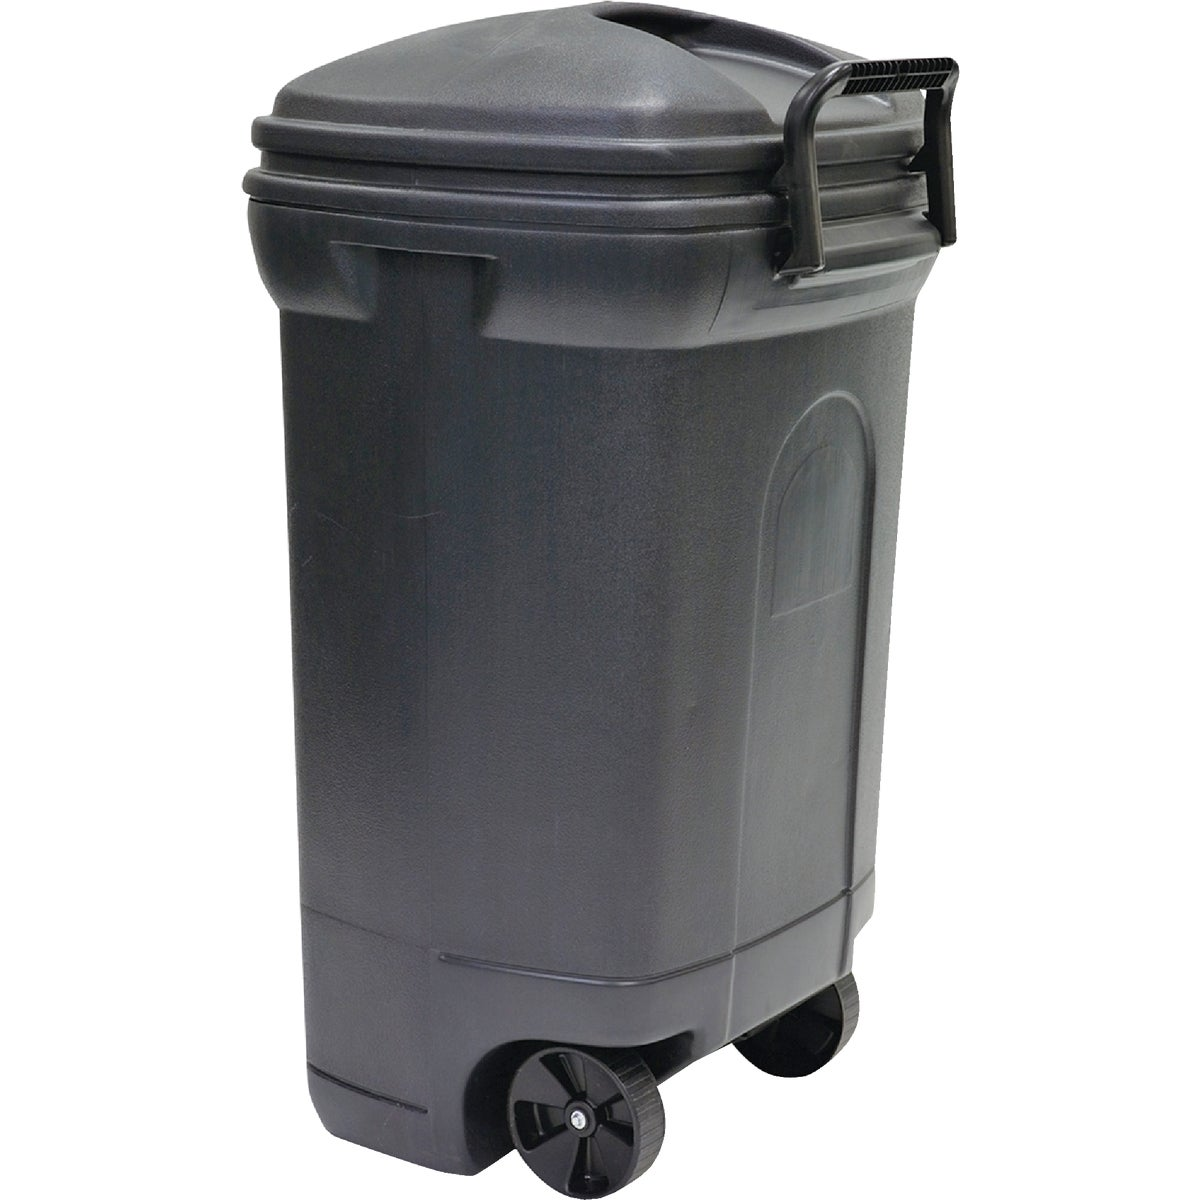 34GAL RECT TRASH CAN - TB0008 by United Solutions